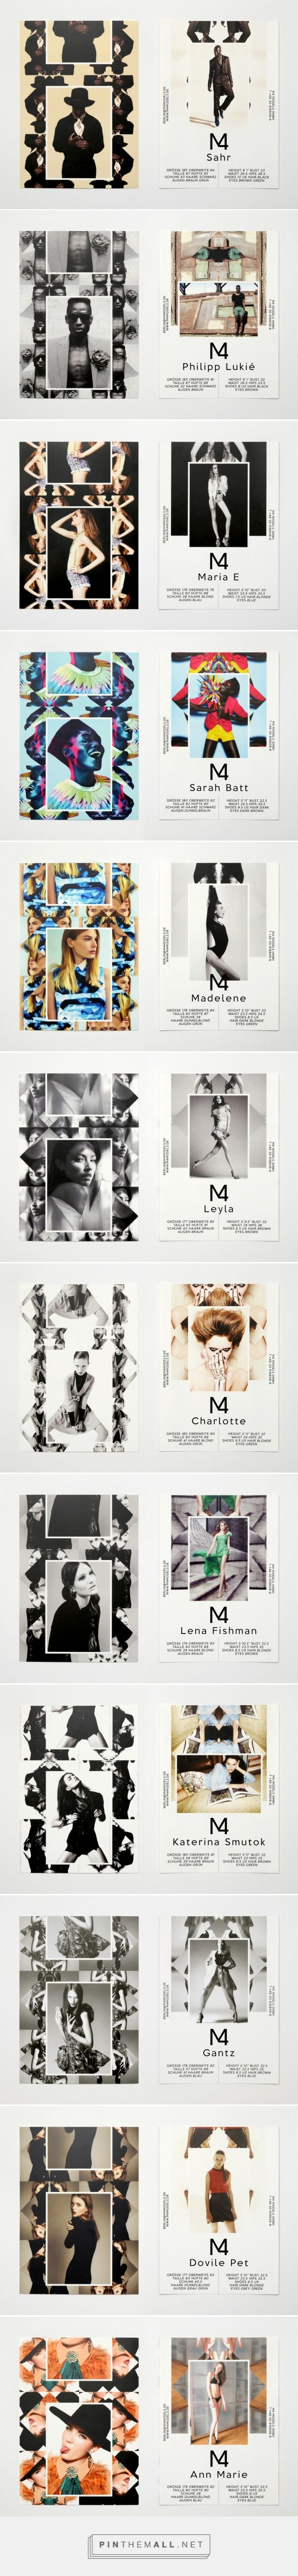 M4 Models SedCards Summer 2012 | Eps51 graphic design studio... - a grouped images picture - Pin Them All